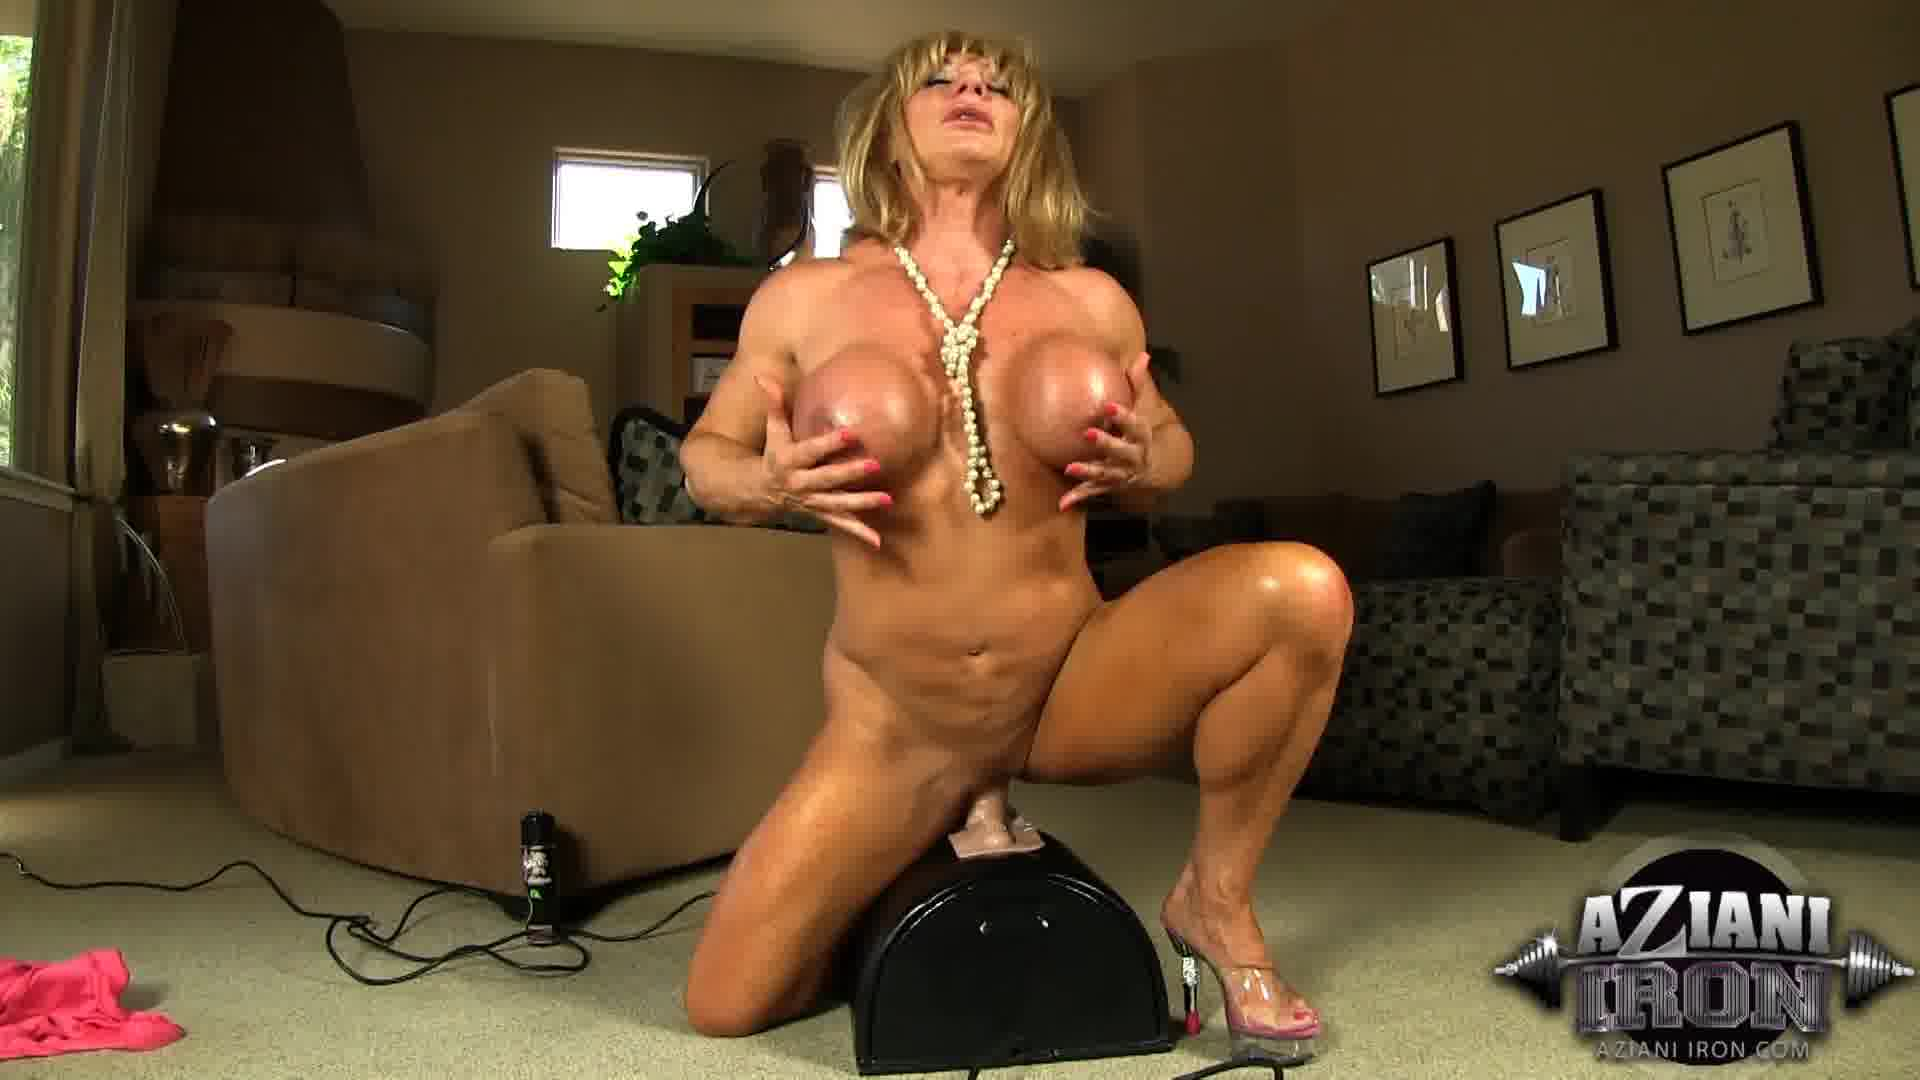 image Bodybuilder on sybian with proof 100 real orgasms